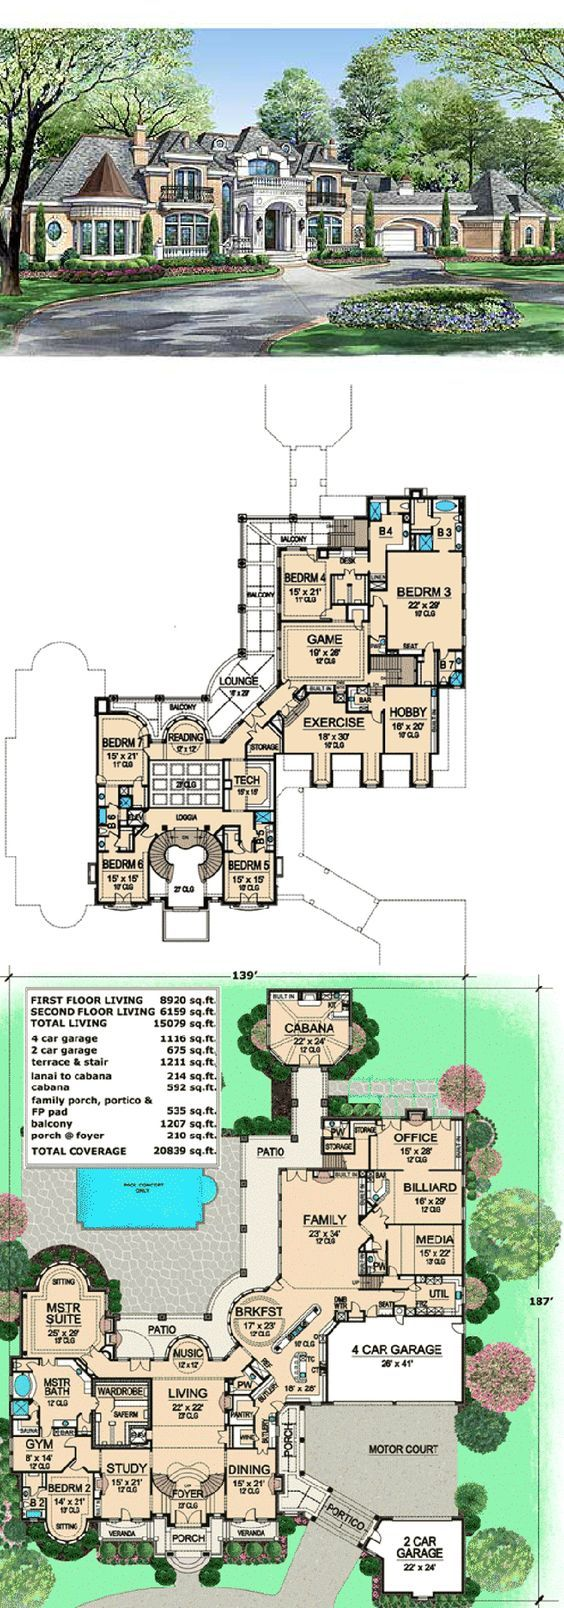 Architectural Floor Plans Sims 4 The One